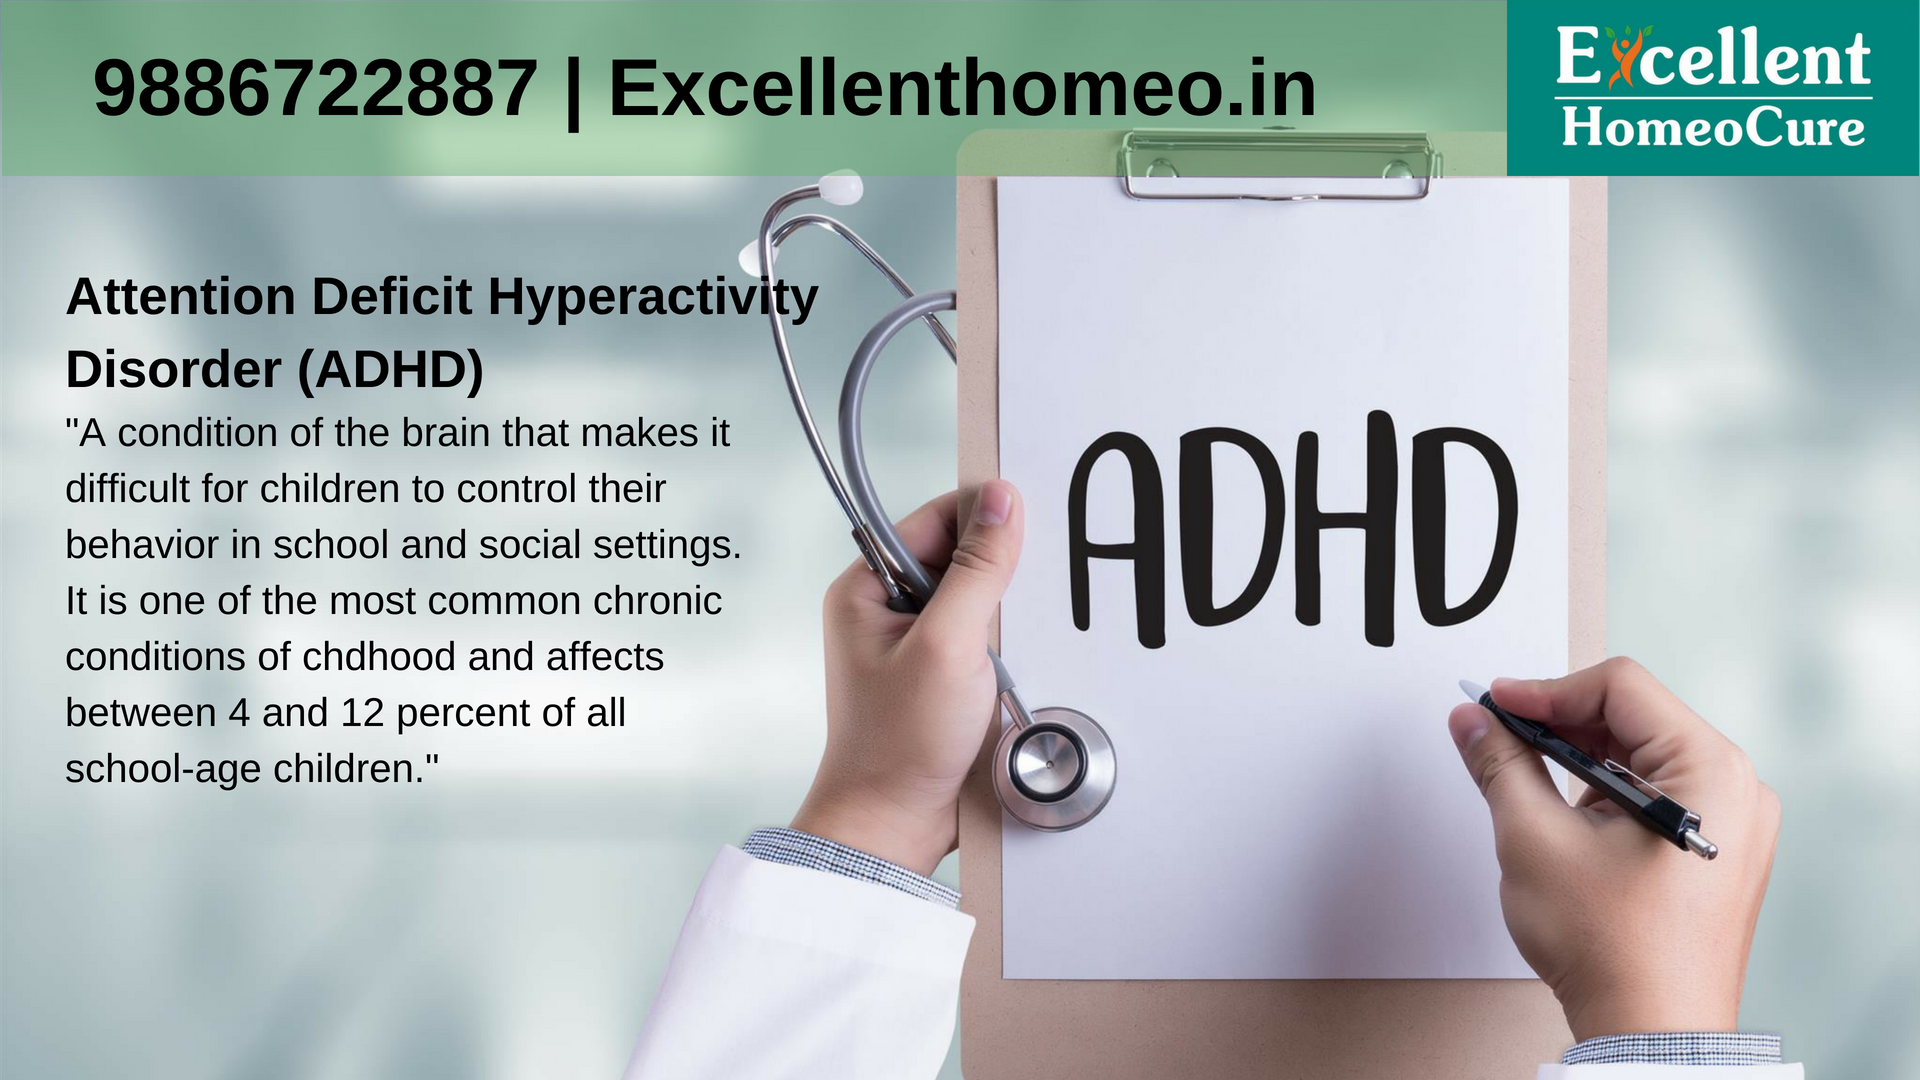 Best Homeopathy Doctors For Adhd Problems In Bangalore Excellent